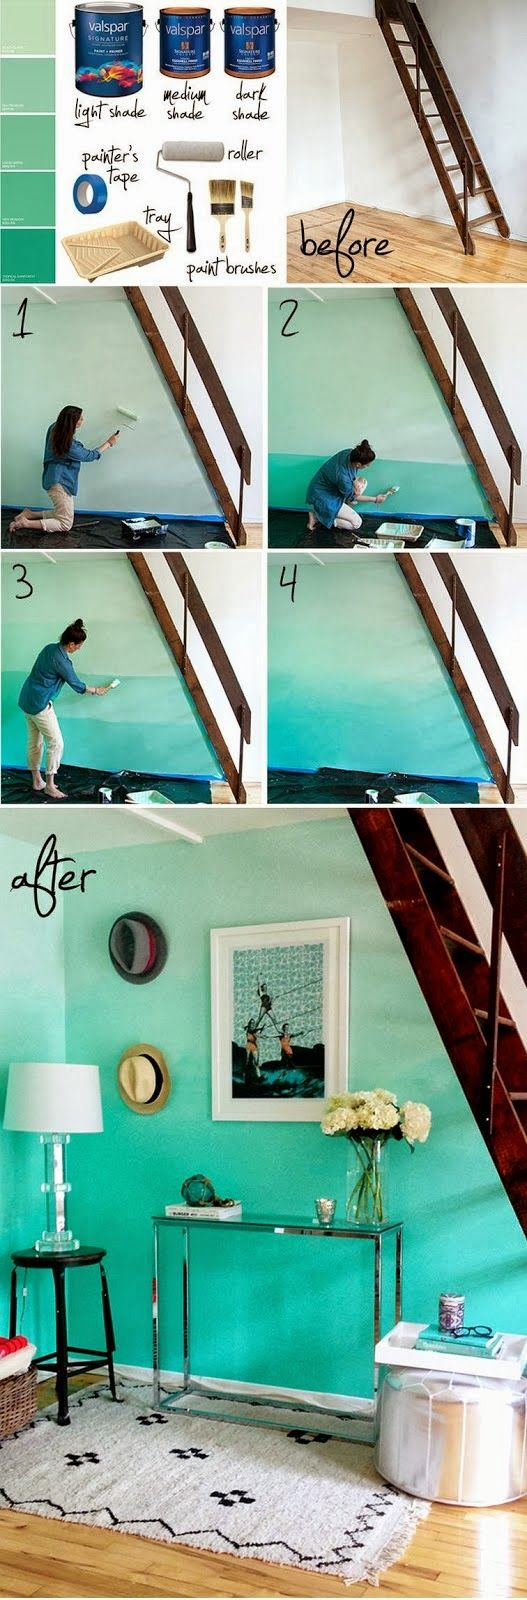 My Diy Projects Make Your Home Stylish From The Floor To Ceiling With A Freshly Painted Feeling Home Diy Home Decor Home Deco